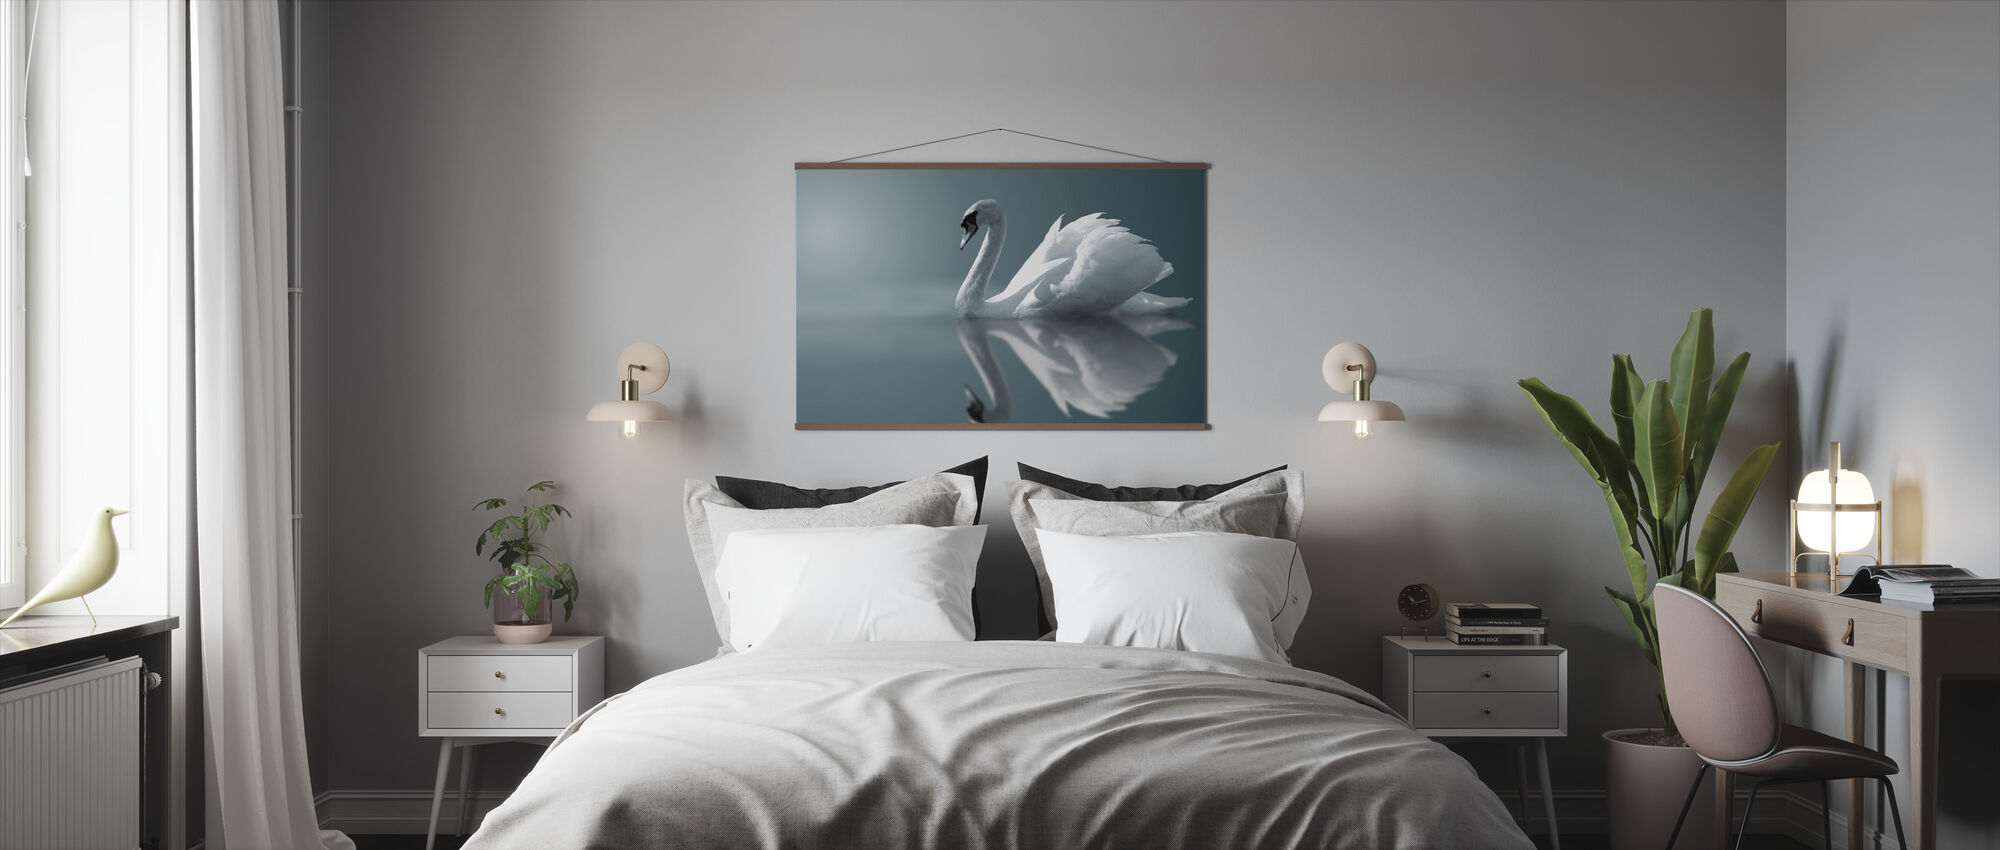 Swan Reflection - Poster - Bedroom